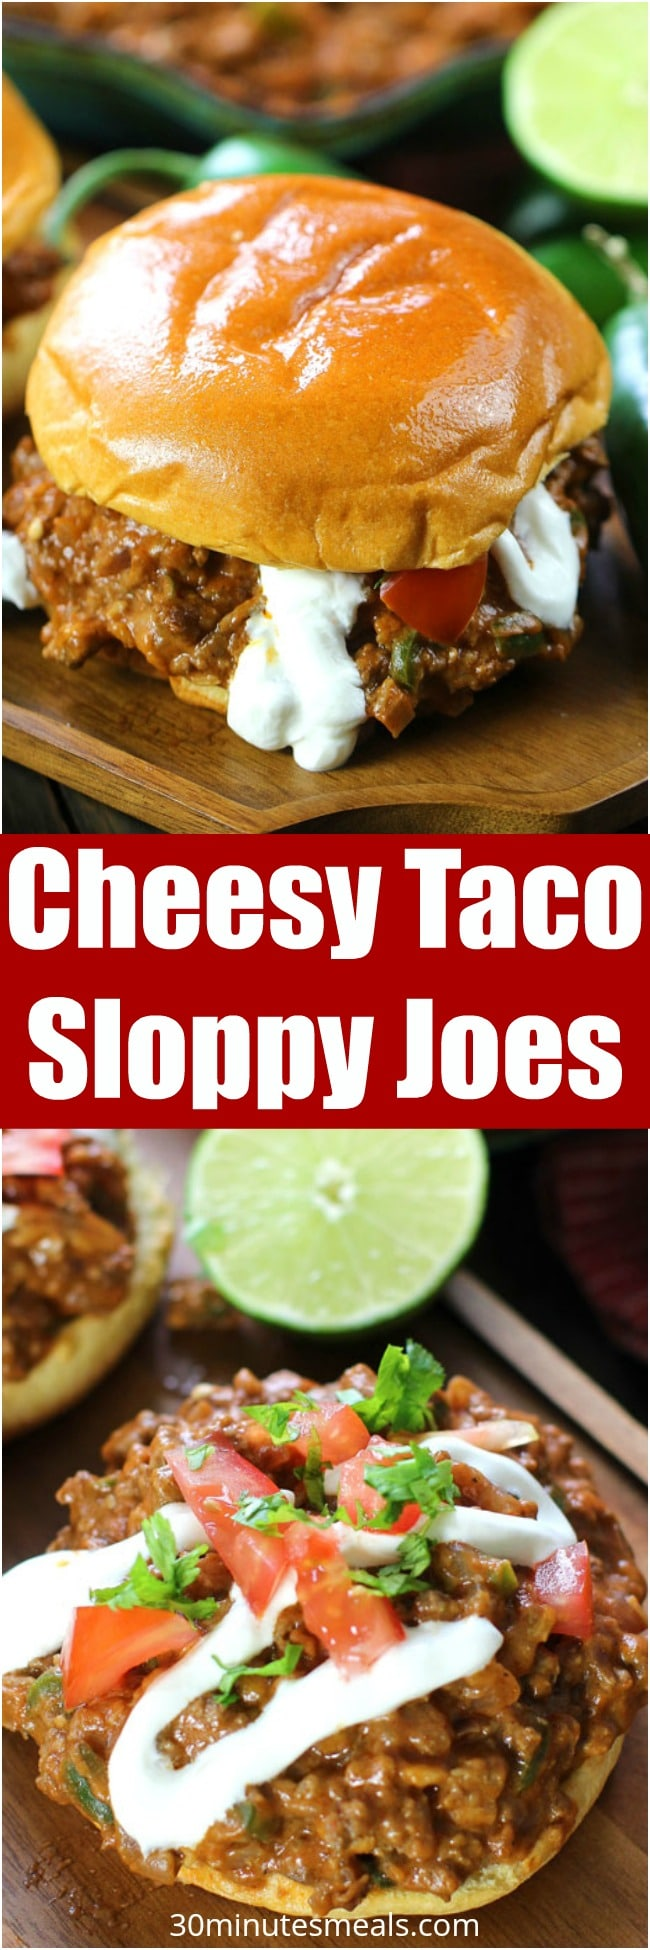 Cheesy Taco Sloppy Joes are one of the easiest and most delicious dinners you will ever make. Bonus points for being made in a one pan in less than 30 minutes.